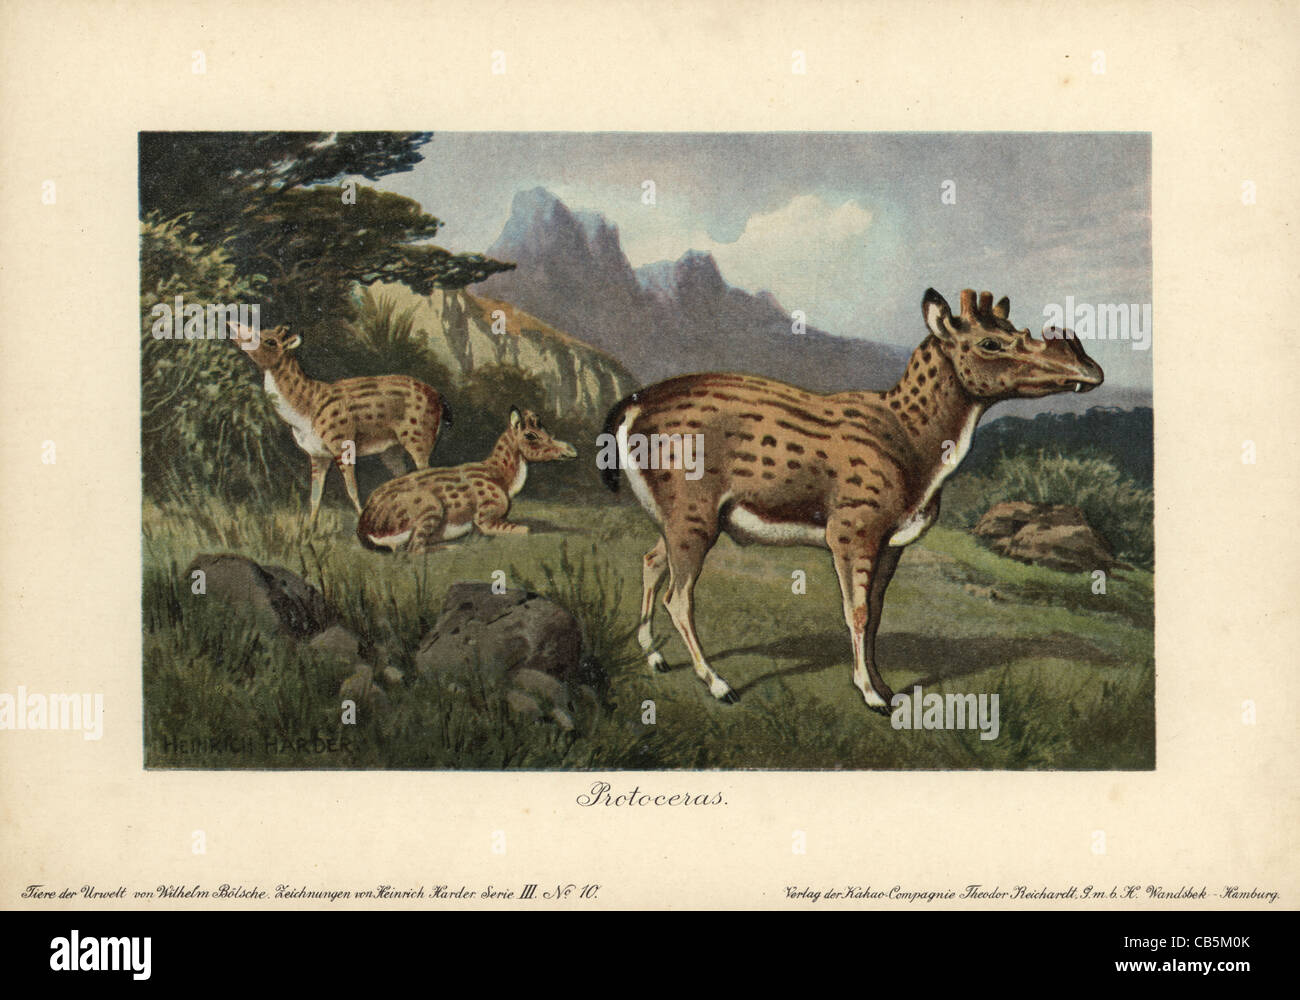 Protoceras, extinct genus of Artiodactyla, - Stock Image